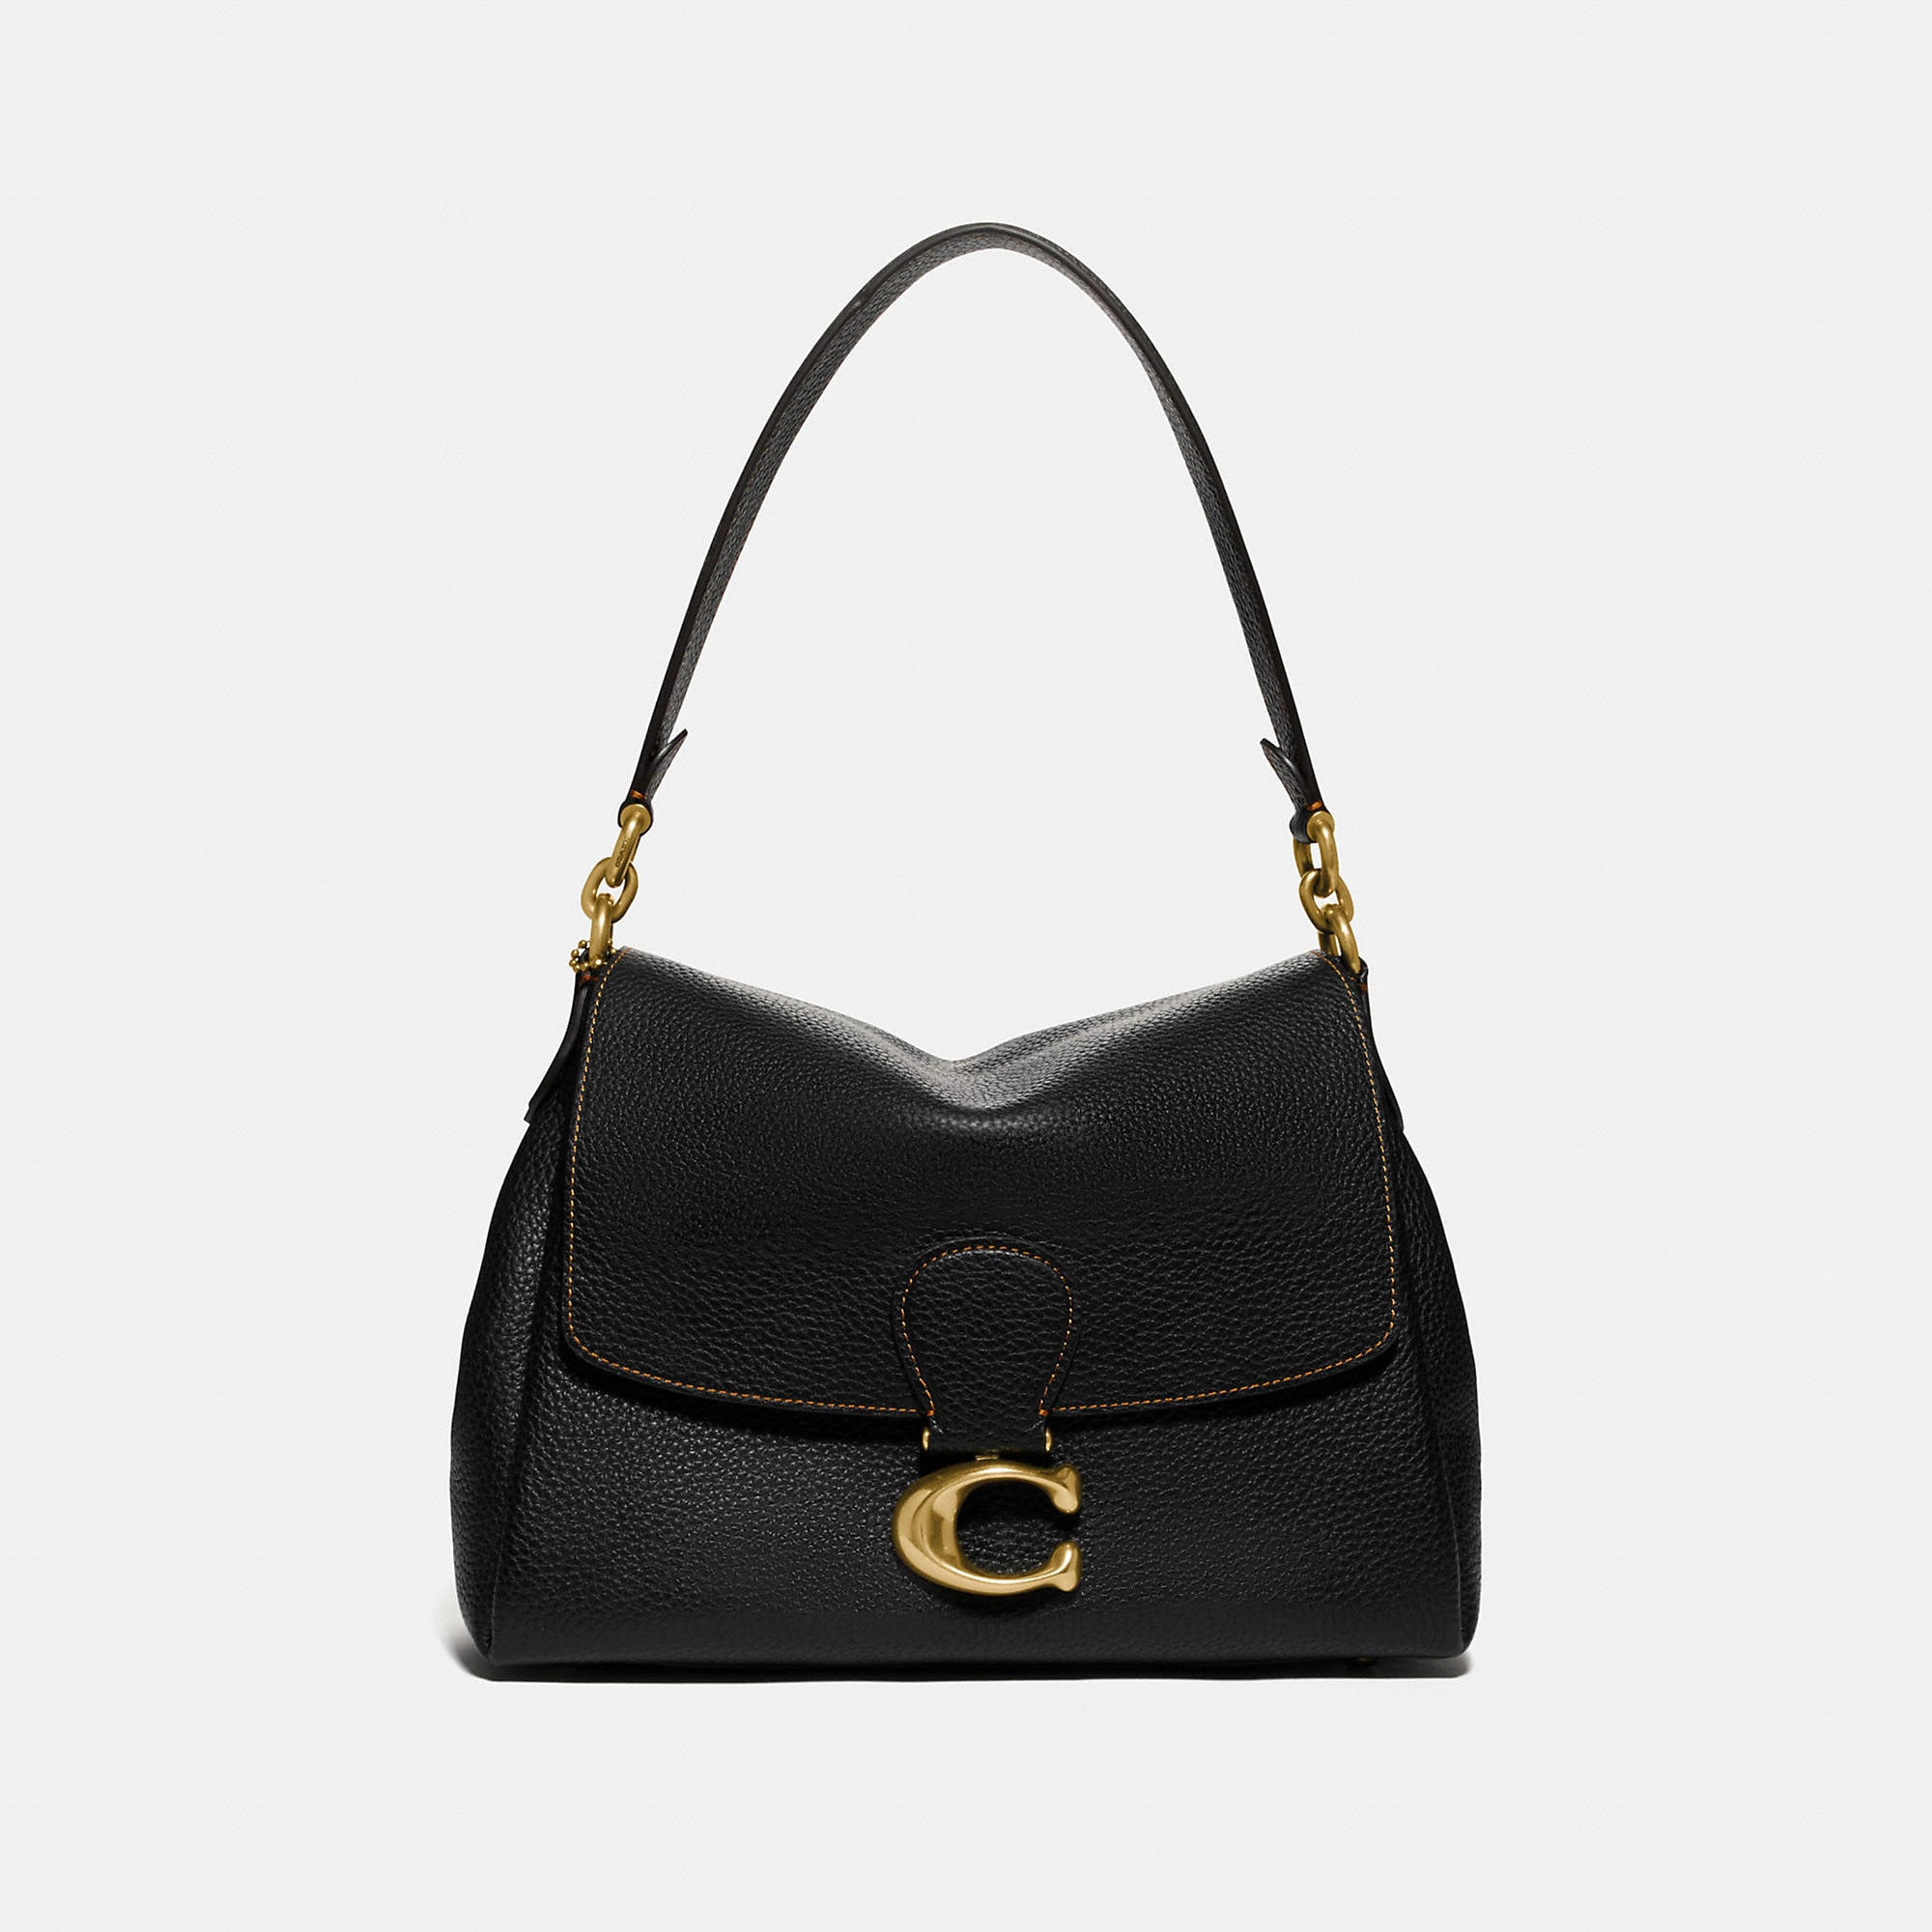 Coach Leathers COACH MAY SHOULDER BAG - WOMEN'S